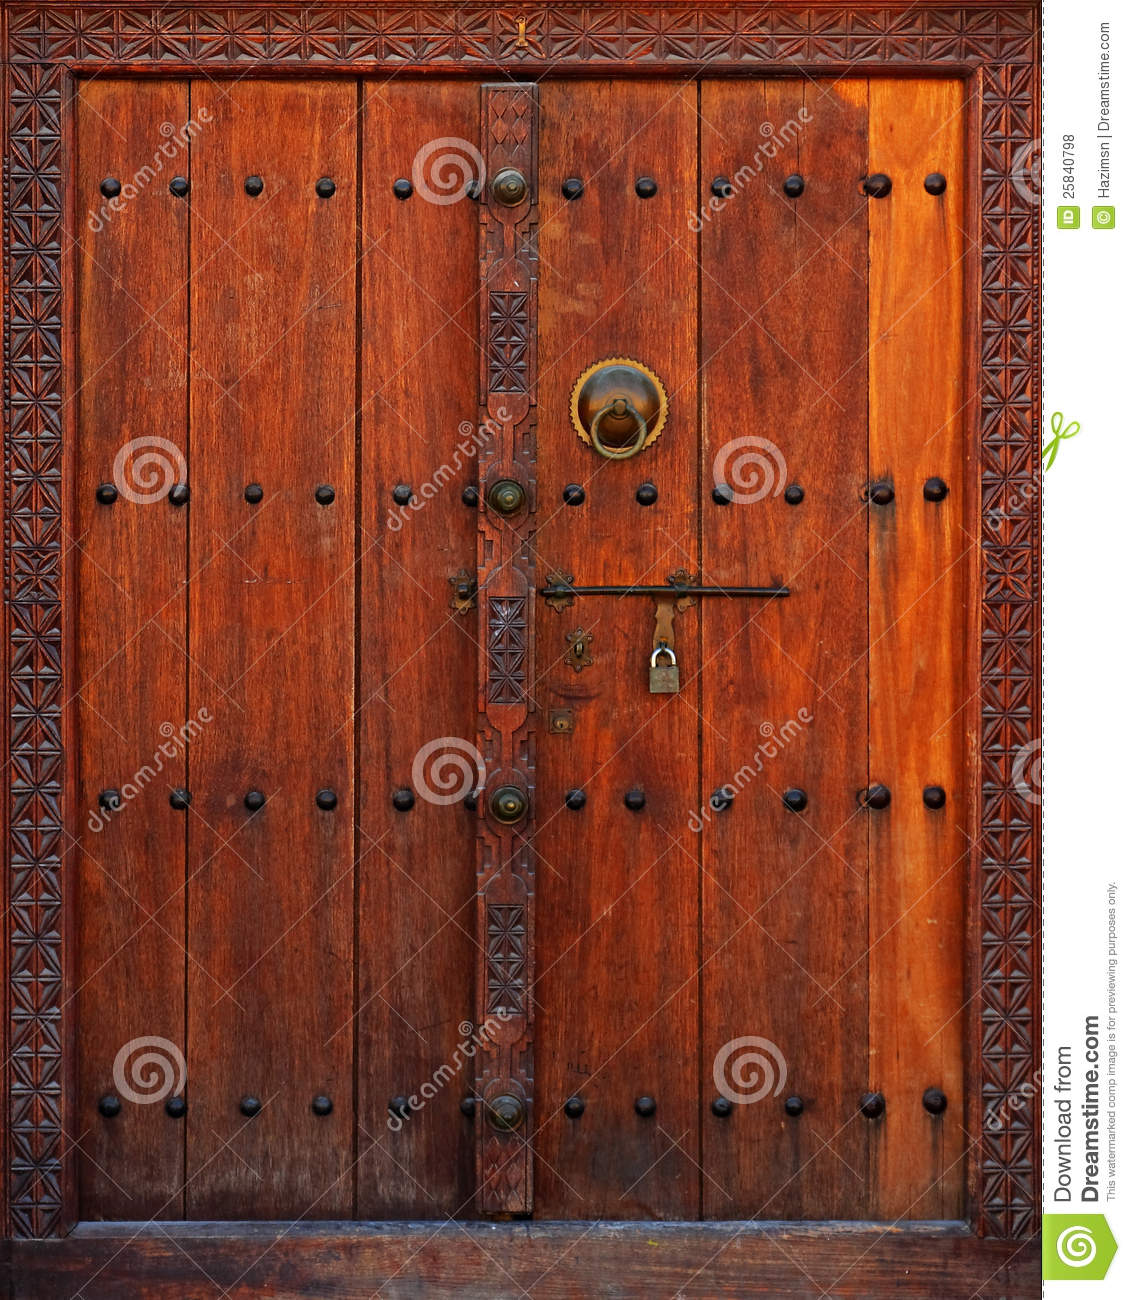 Wooden Door with Carved Frame